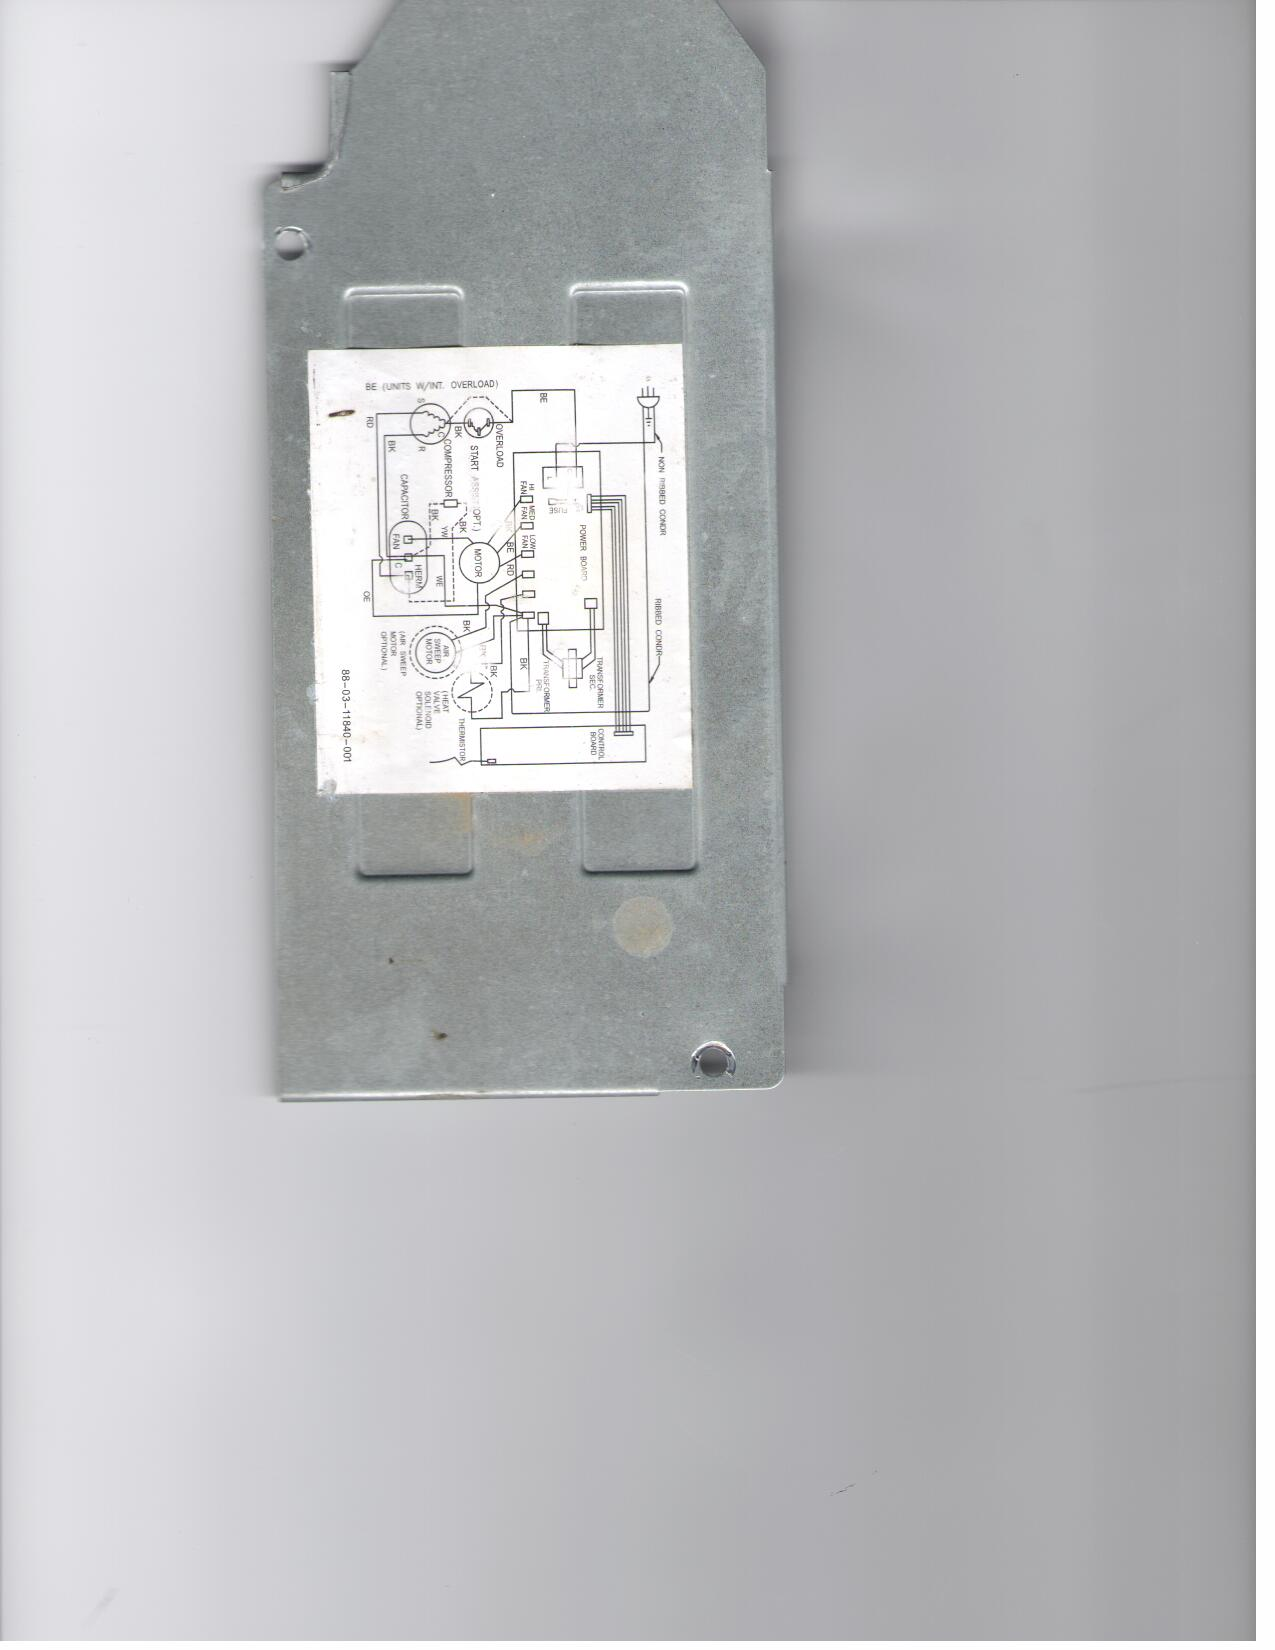 [NRIO_4796]   Maytag/Fedders 14,500 BTU window A/C unit Mod# M7Y15F2A-D. came home to  find the unit frozen up and could not stop | Fedders Air Handler Wiring Diagram |  | JustAnswer